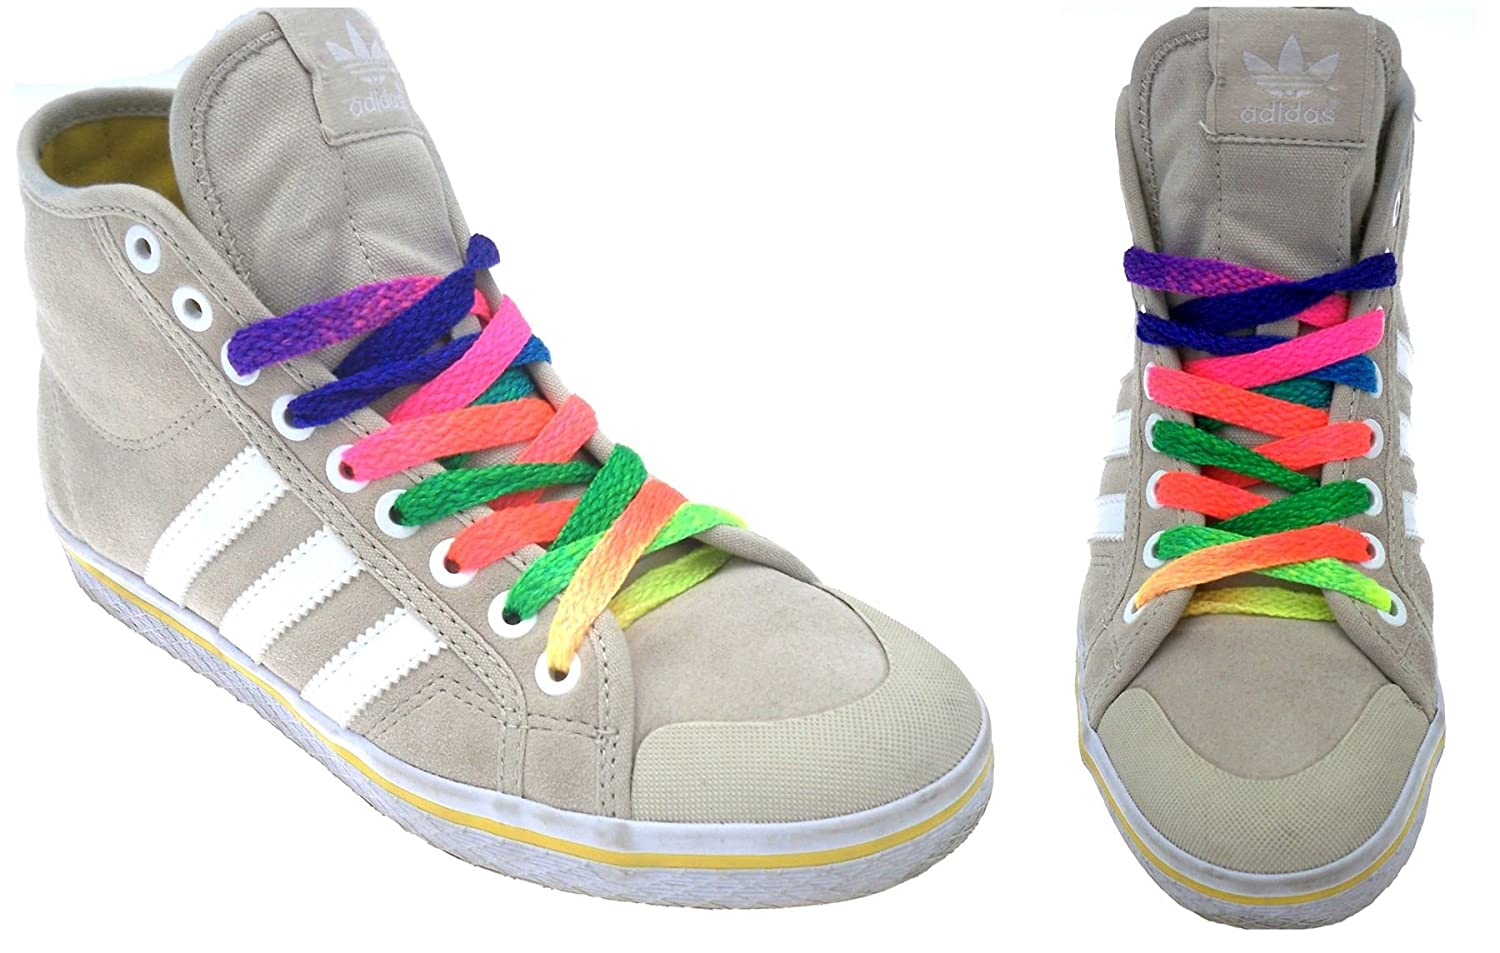 8mm FLAT STRONG SHOELACES SPORTS TRAINER /& BOOT SHOE LACES 9 COLOURS